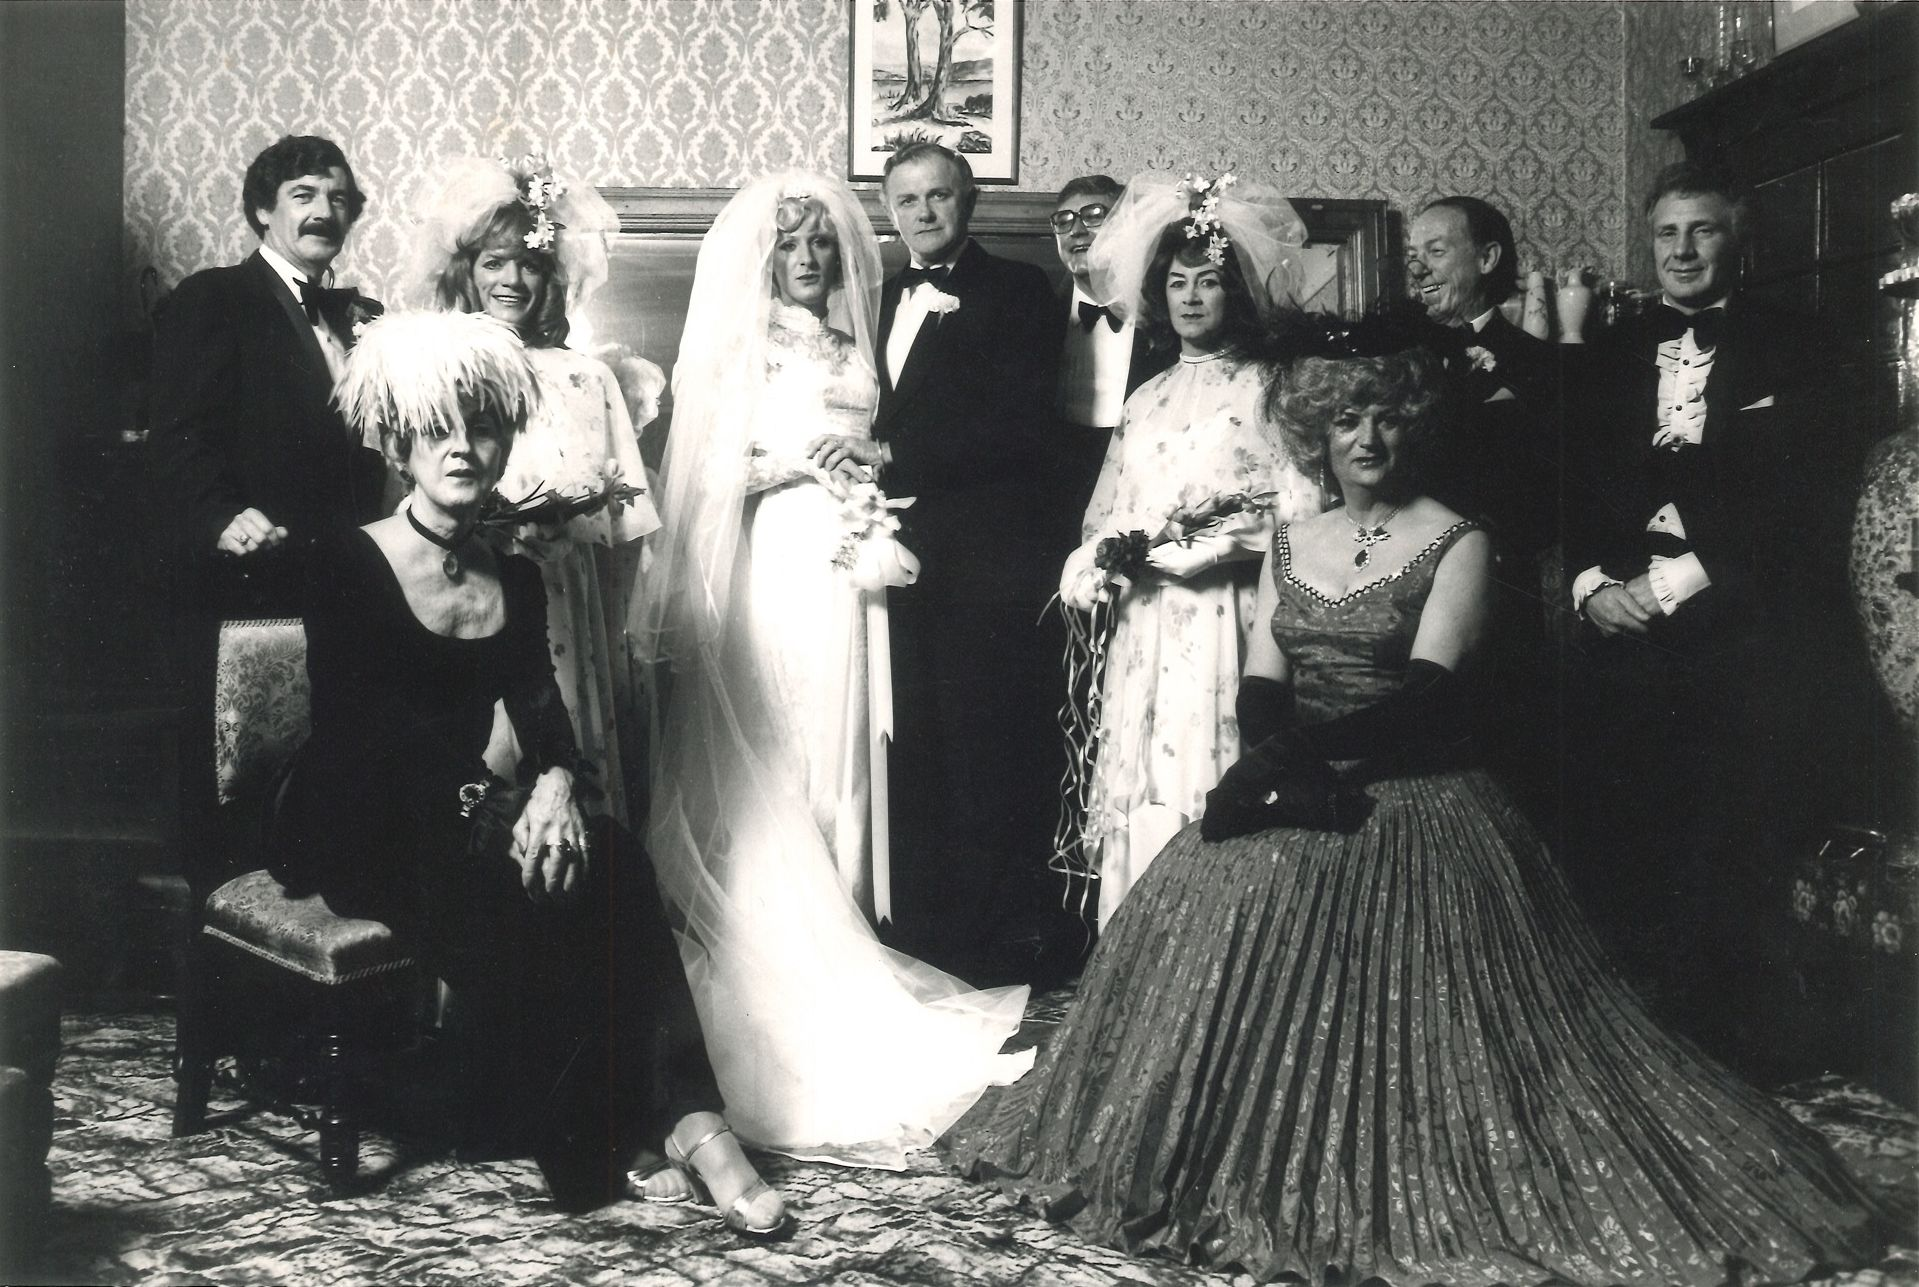 Max, Claudia, Jamie, Lex, Phil, Alice, Roy, John, Lady Paula Howard (lower left) and Lottie (lower right) at Jamie and Lex's wedding, Kew, Melbourne, c. 1970s Unknown artist